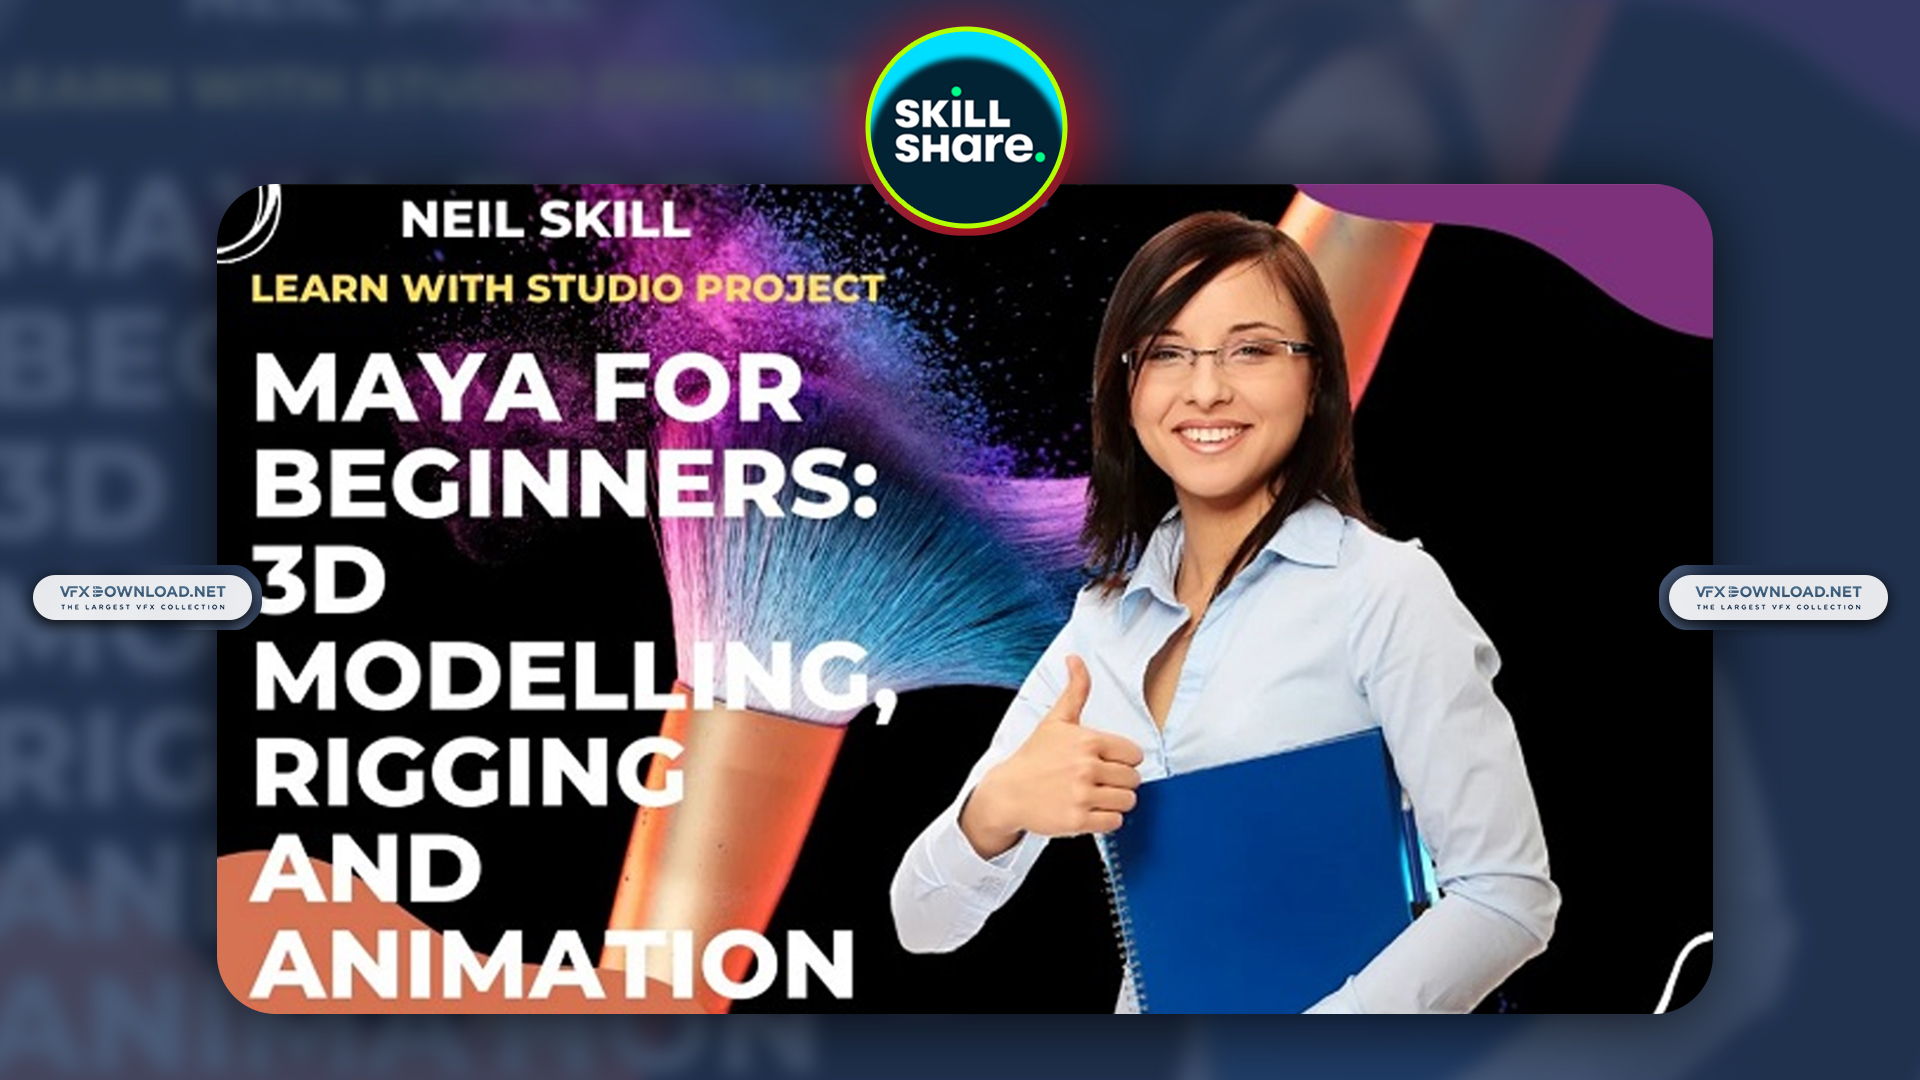 Maya for Beginners 3D Modelling, Rigging, and Animation By Neil Skill